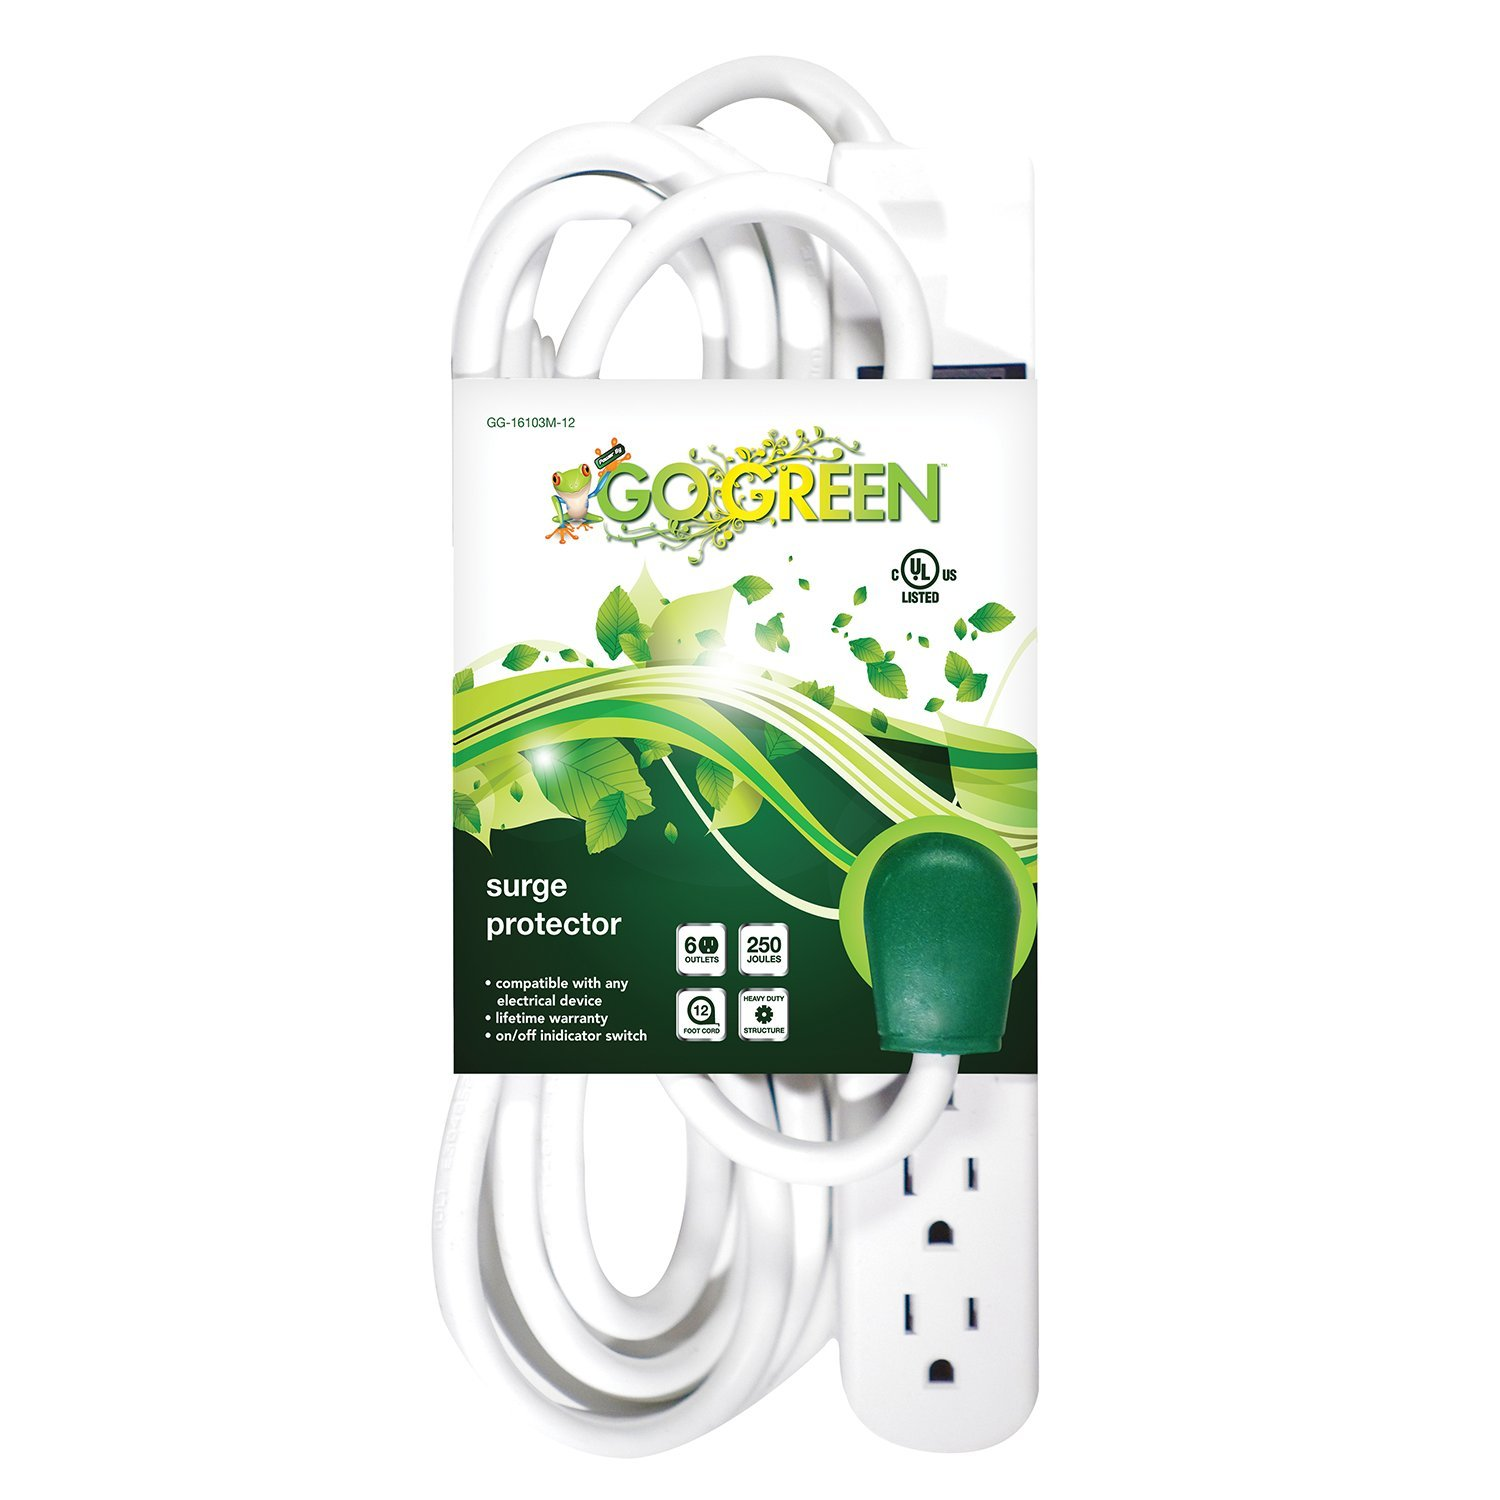 Gogreen Power Gg 16103m 12 6 Outlet Surge Protector Amplifier Using Tda2009a Watt 15x2 Audio With 12ft Cord Home Improvement